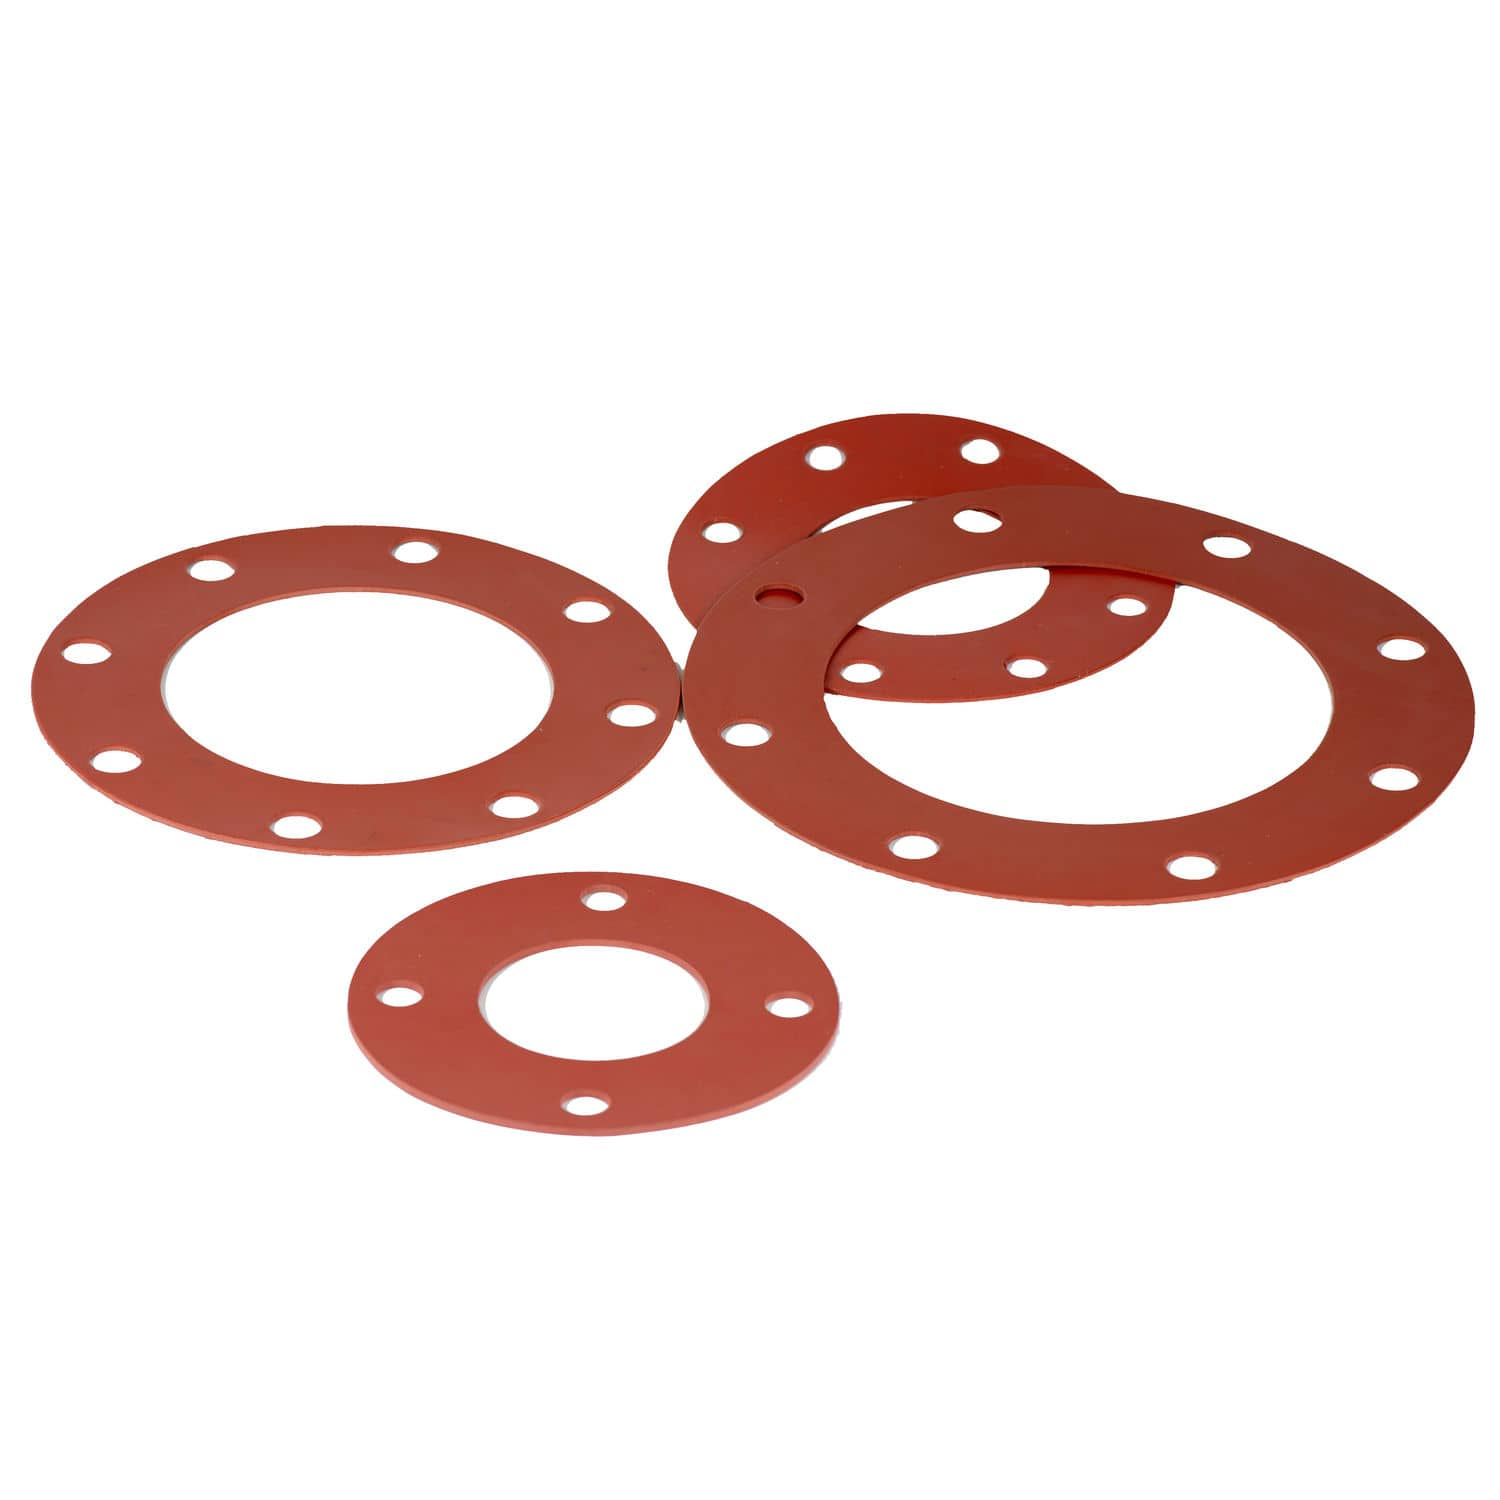 Round gasket / rubber / alcohol / for water - 7237 series - Phelps ...